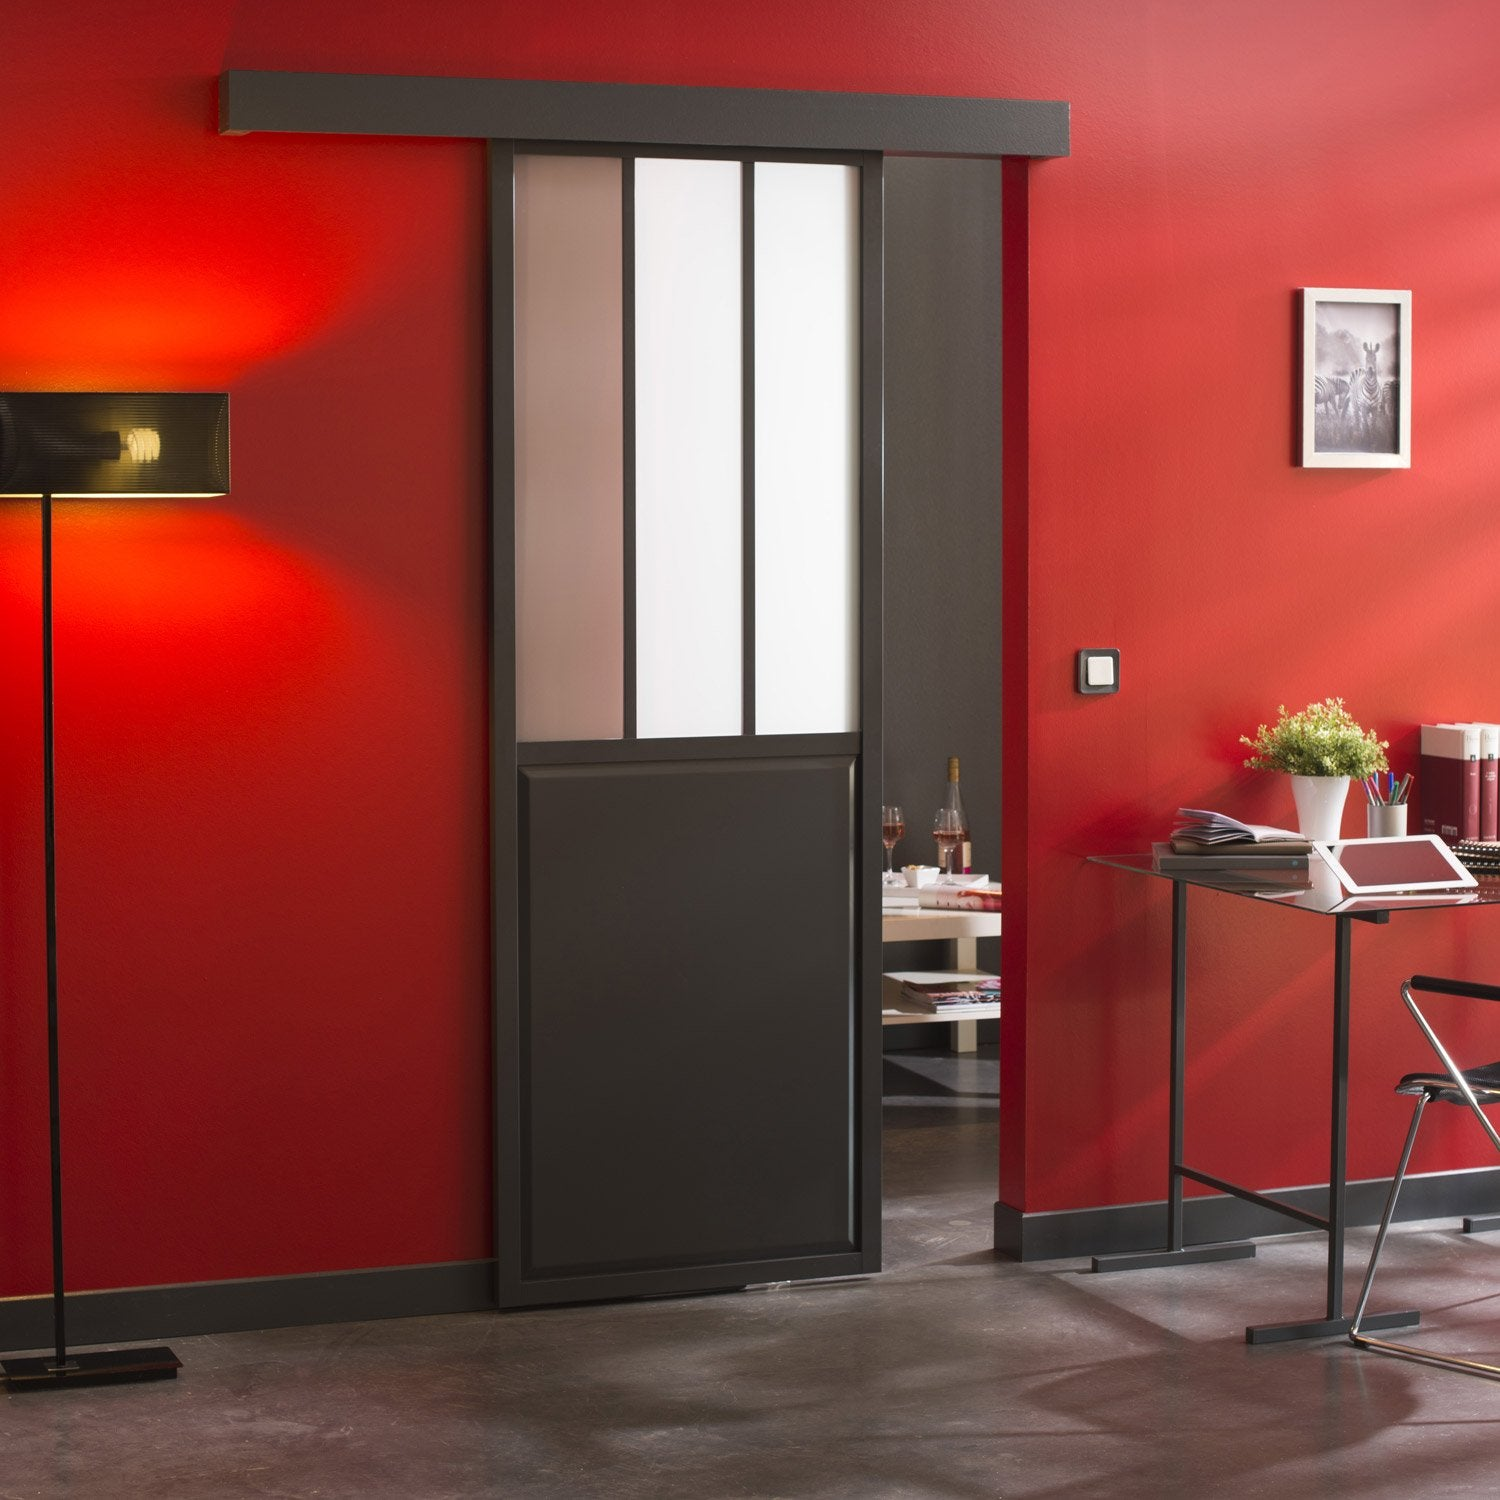 Ensemble porte coulissante atelier verre clair mdf rev tu for Porte cellier